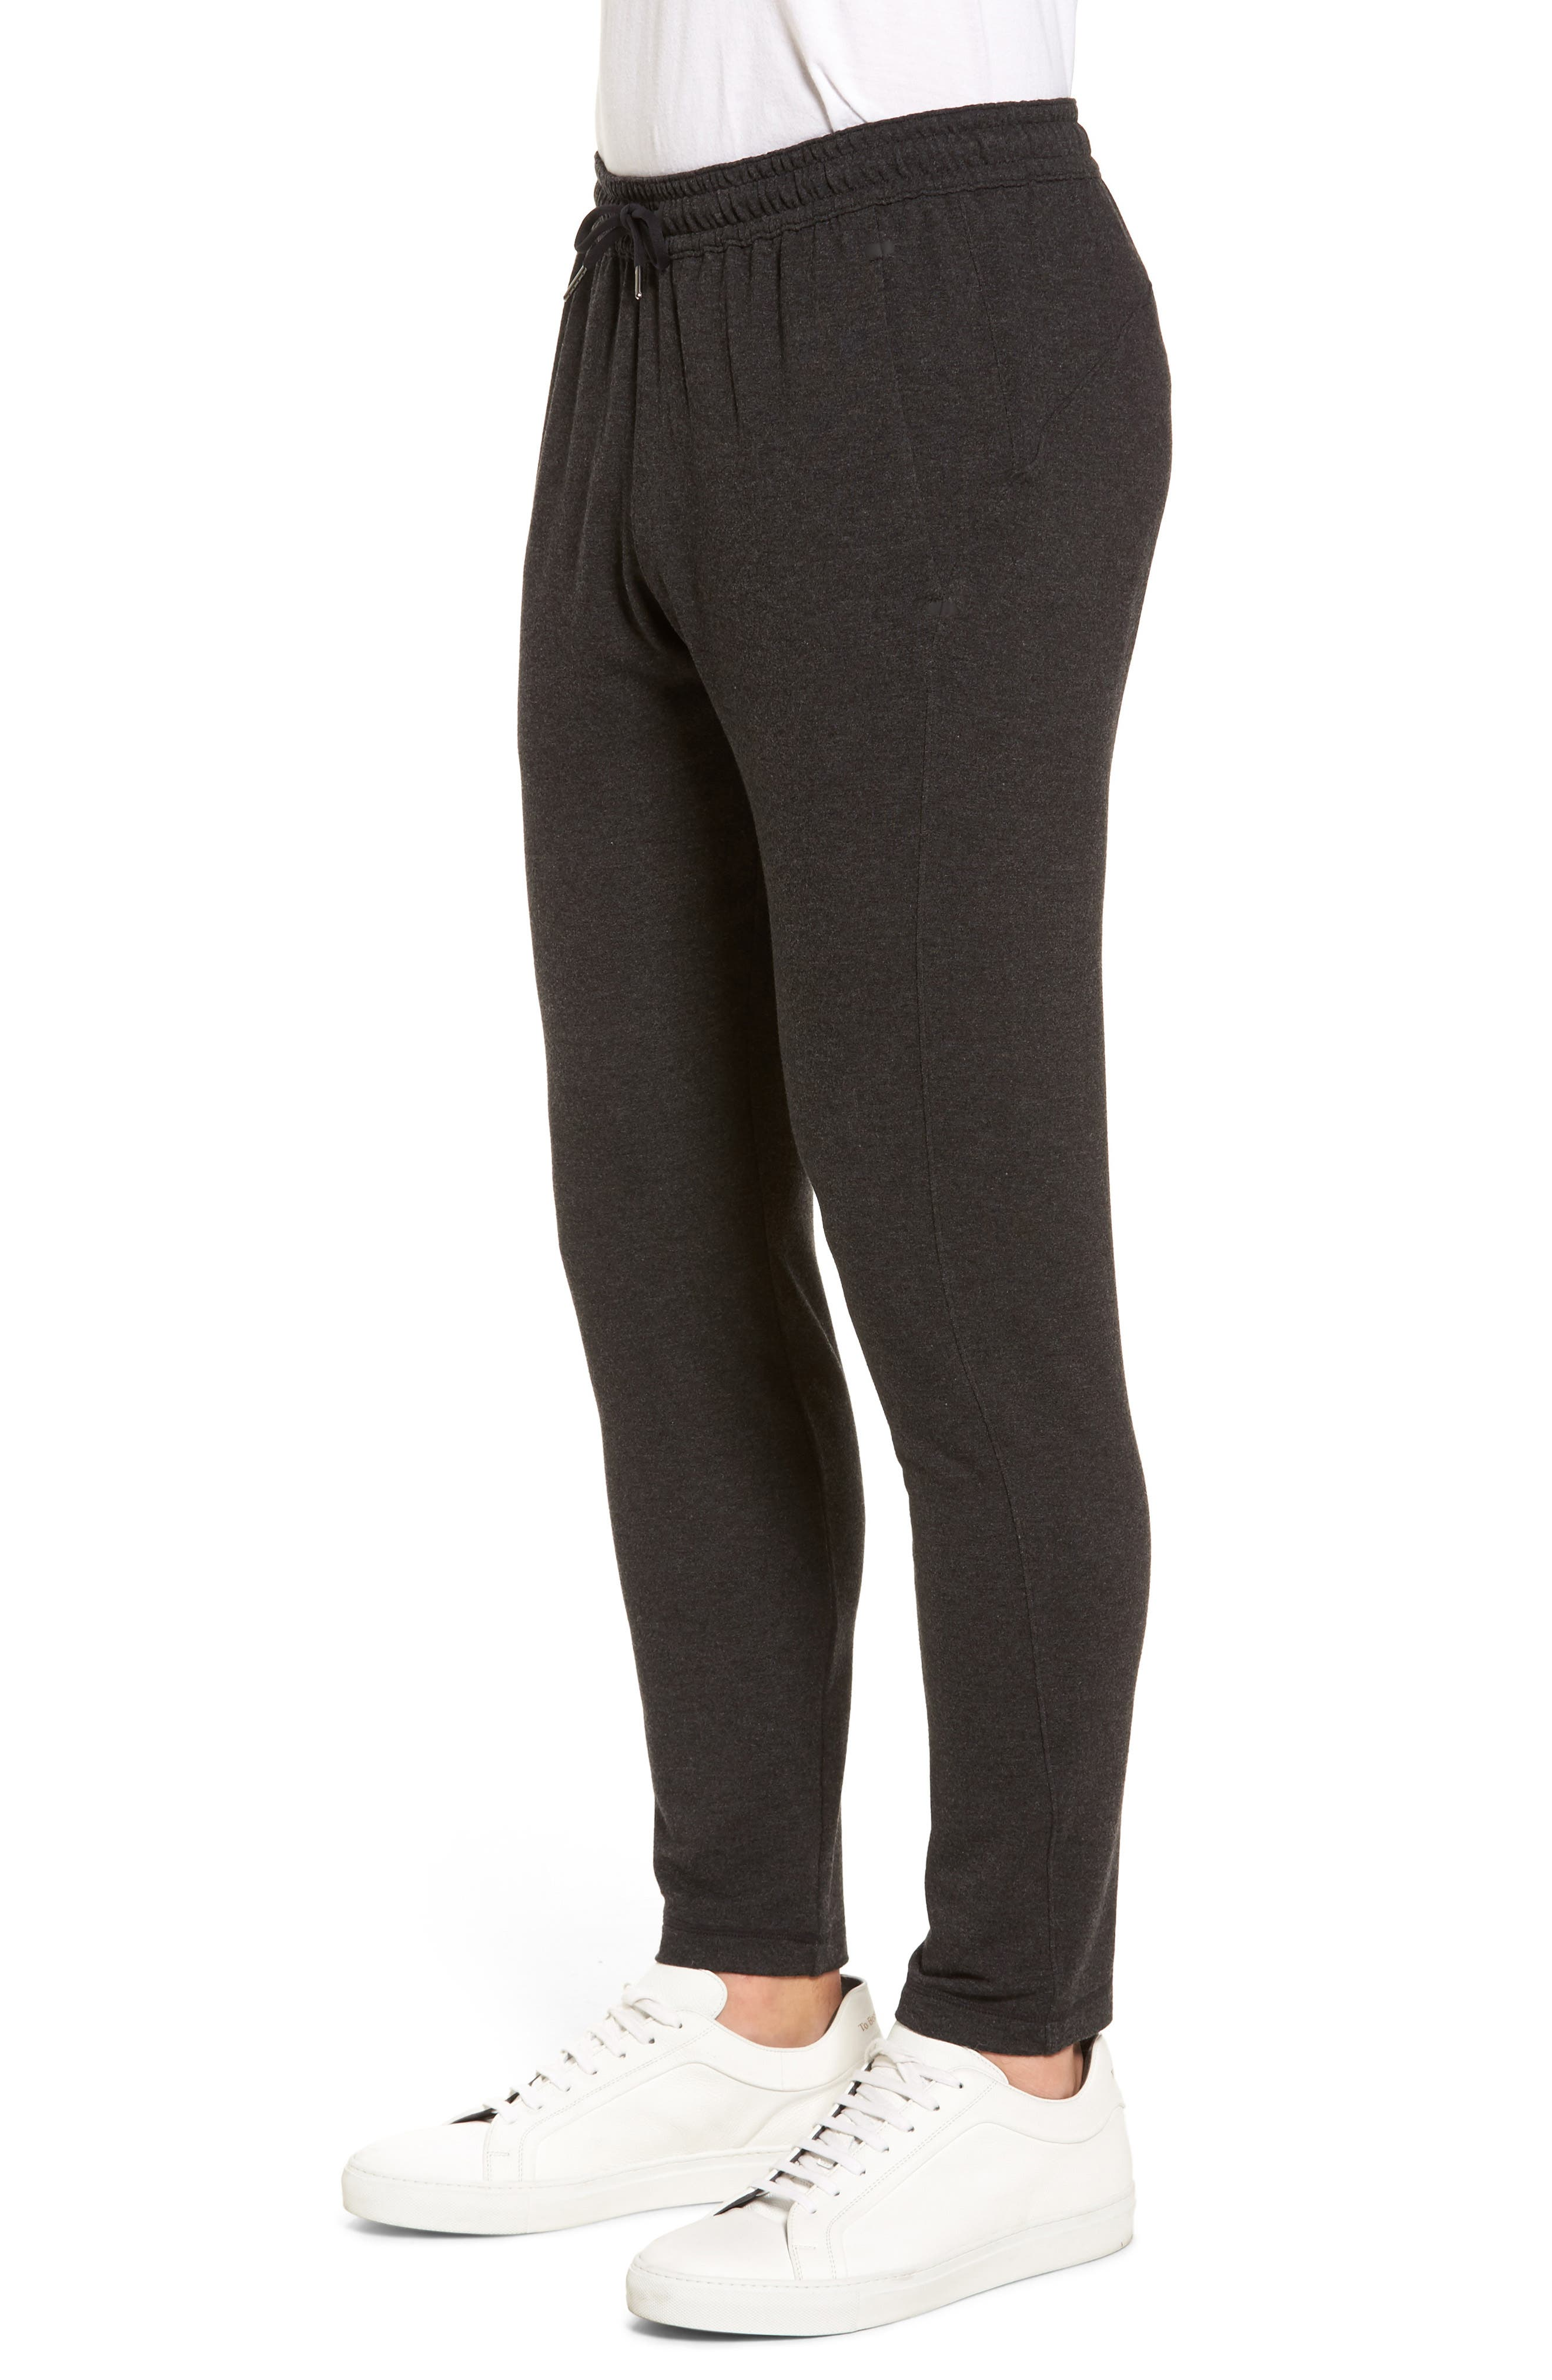 New Pyrite Tapered Fit Fleece Pants,                             Alternate thumbnail 3, color,